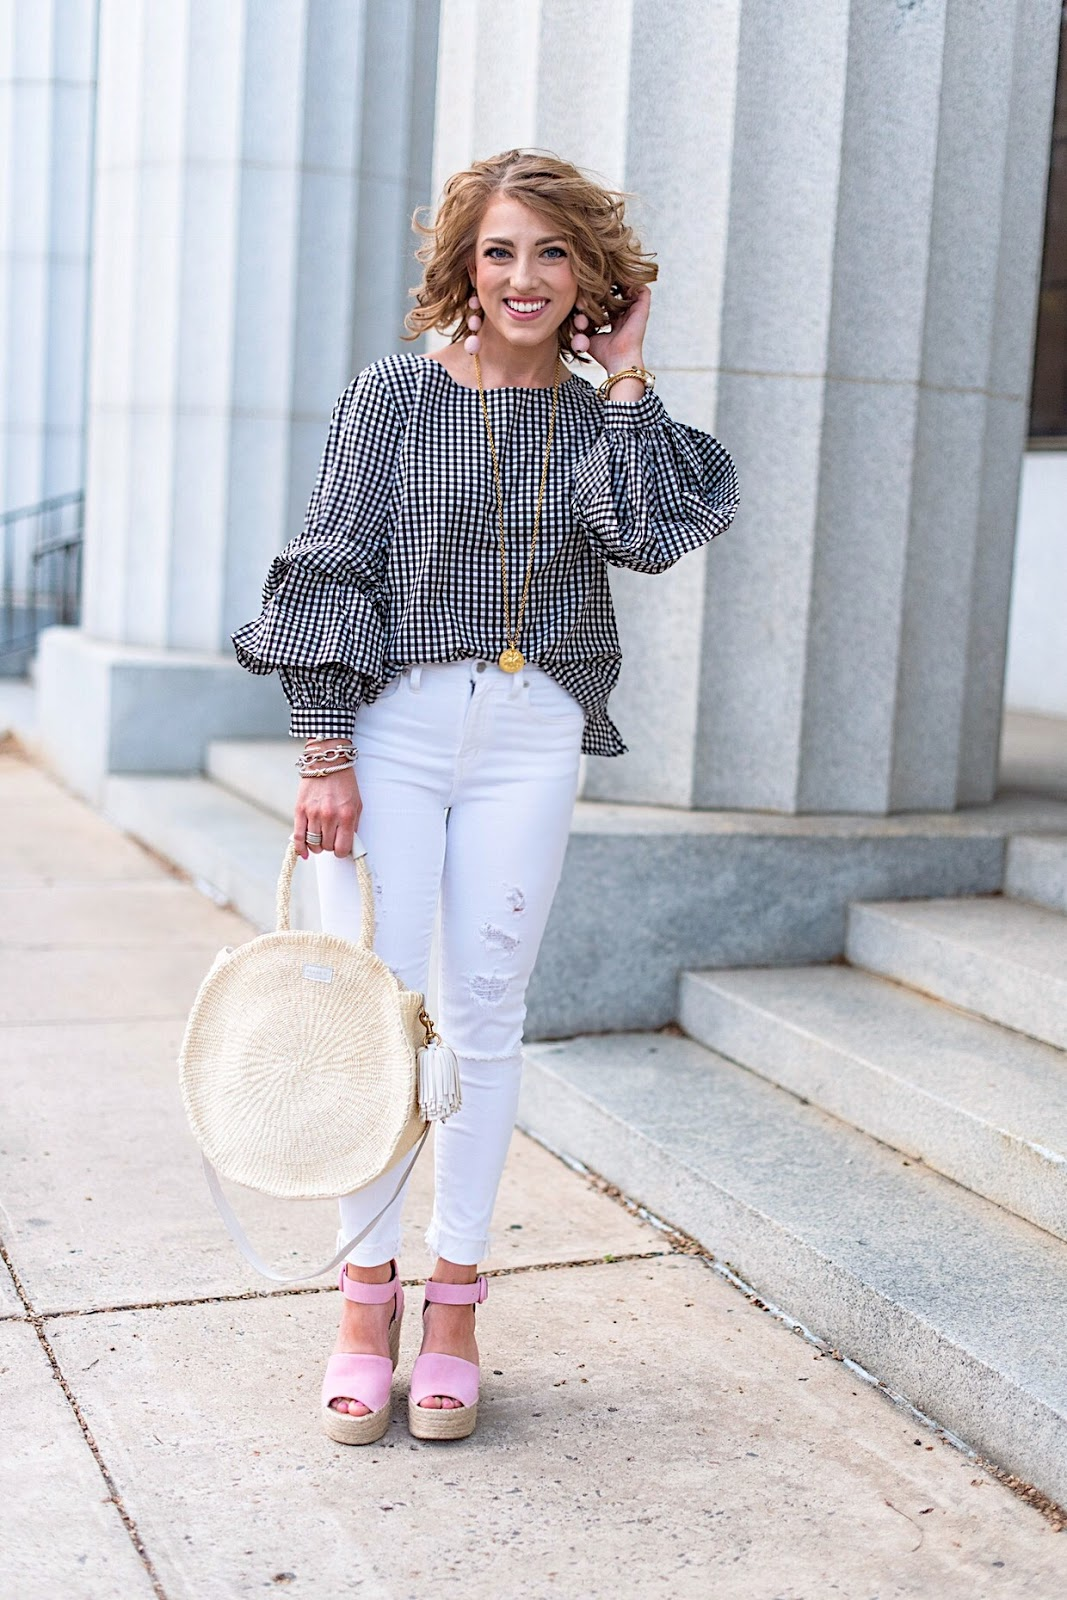 Black Gingham Top + Pink Wedges - Click through to see the full post on Something Delightful Blog